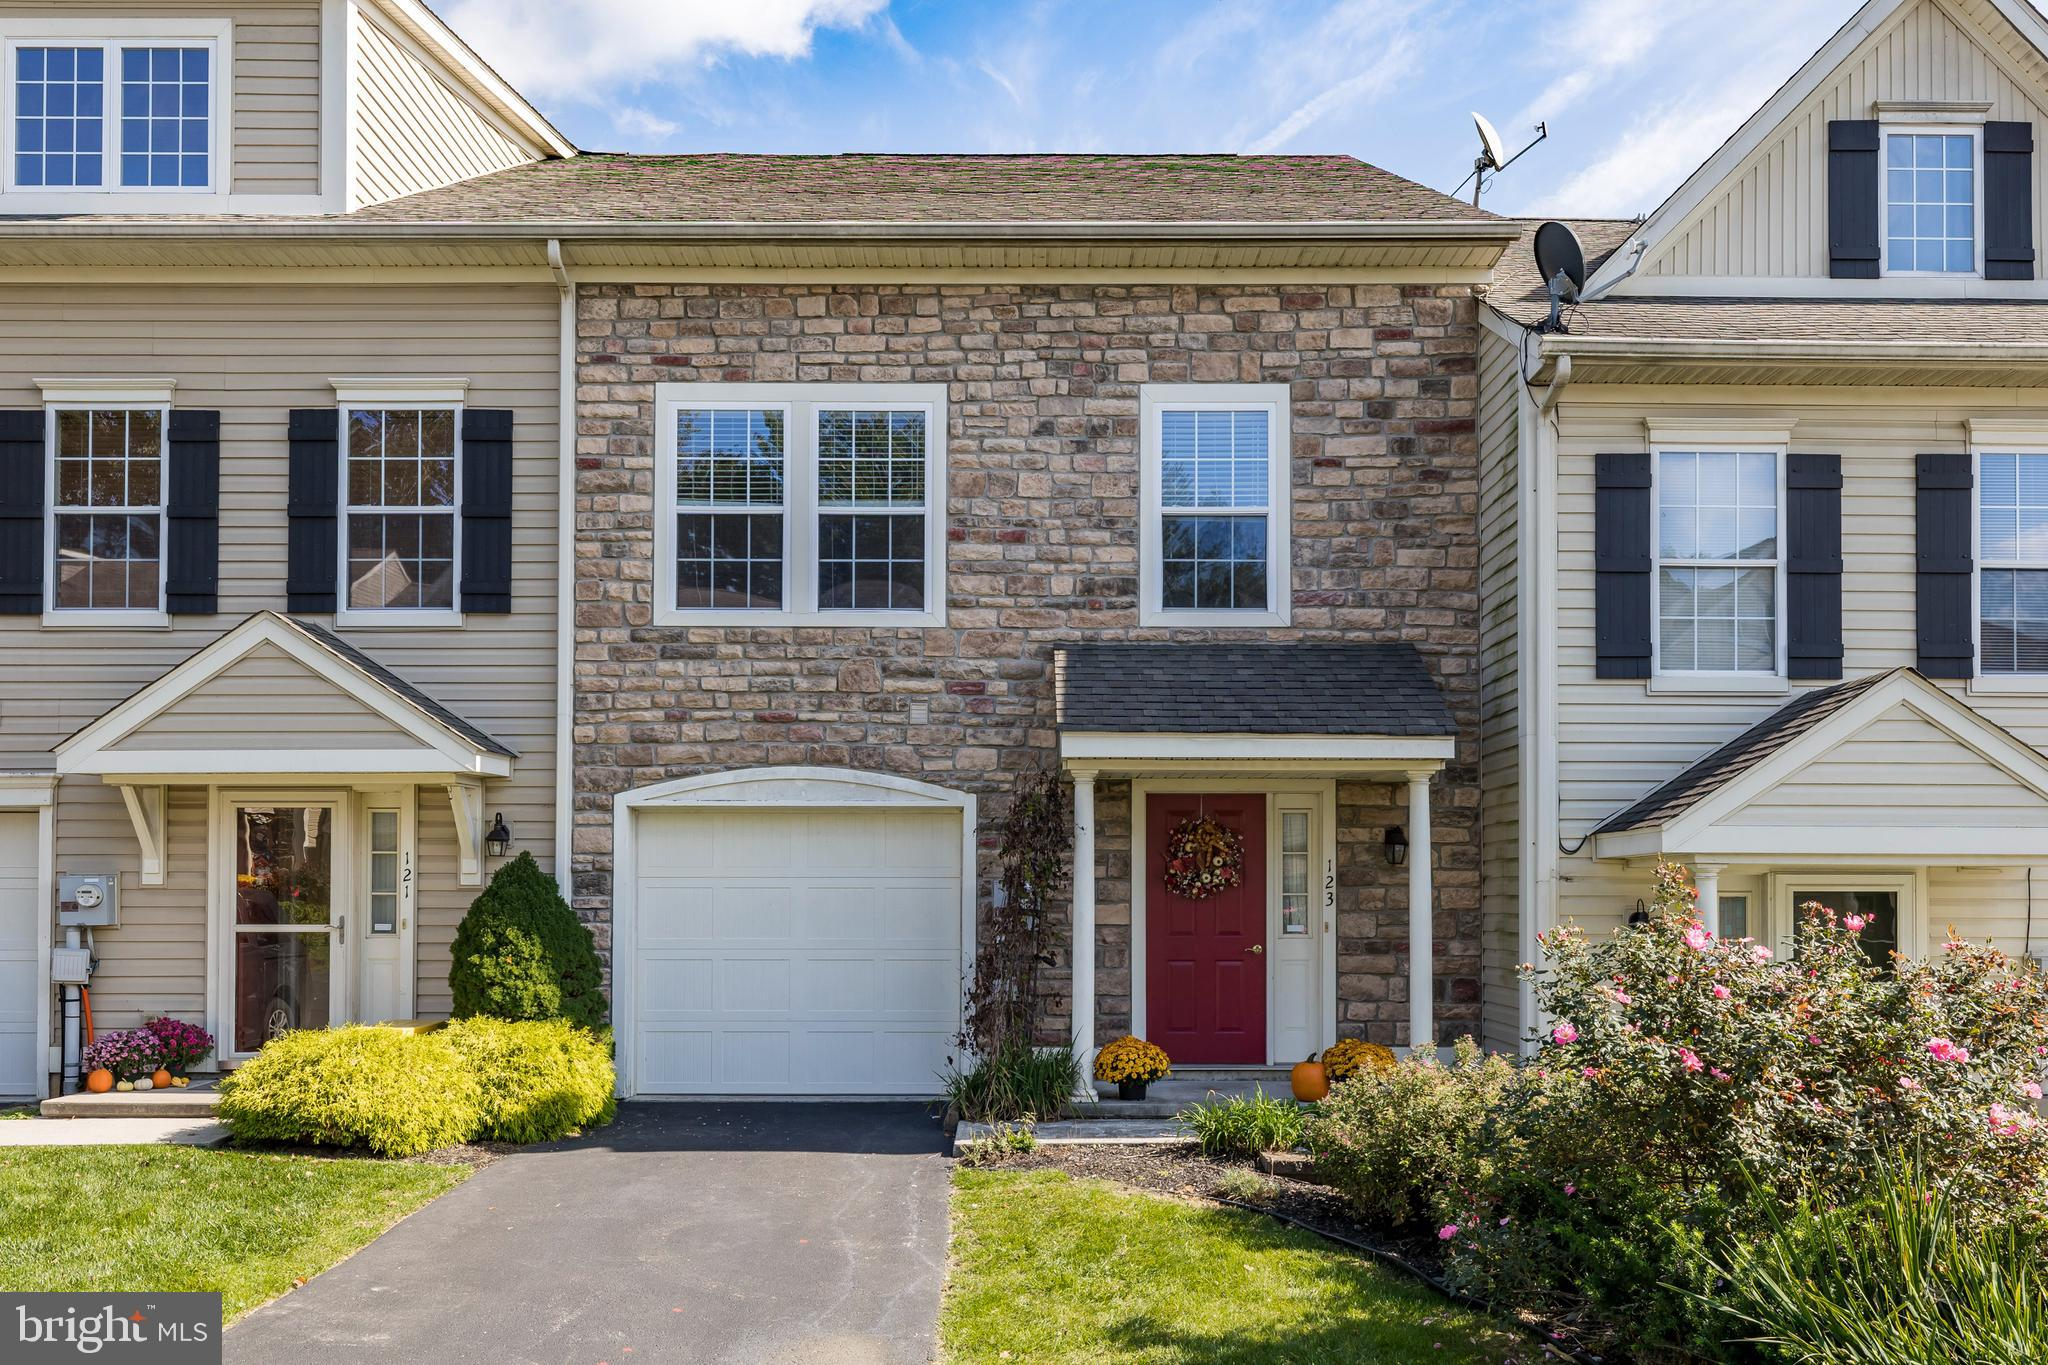 A beautiful townhome located in the bucolic Honey Brook township is waiting for its new owners. This lovingly maintained home features brand new flooring on both the main and upper levels and creates a warm and cozy feeling the second you walk in. From the front door you are greeted with a nice open foyer that has a half bath and closet to store away coats and shoes. The floor plan opens up to showcase your dining room that flows easily flows into your large kitchen with lots of cabinet storage as well as counter space. The large living room boasts lots of natural light and has a sliding door to lead to your quiet backyard space. The upstairs features 3 nice sized bedrooms with the master truly providing you with the comfort and luxury you would expect in a home. The master bathroom is large with linen closet and  double vanity sink. Venture into your massive walk in closet that is almost the size of a bedroom! The upper level is completed by an additional hall bath as well as laundry. The only thing for the buyer to do is come in and enjoy living in the country with all the amenities one could want in a home.  Don't delay and schedule your appointment!